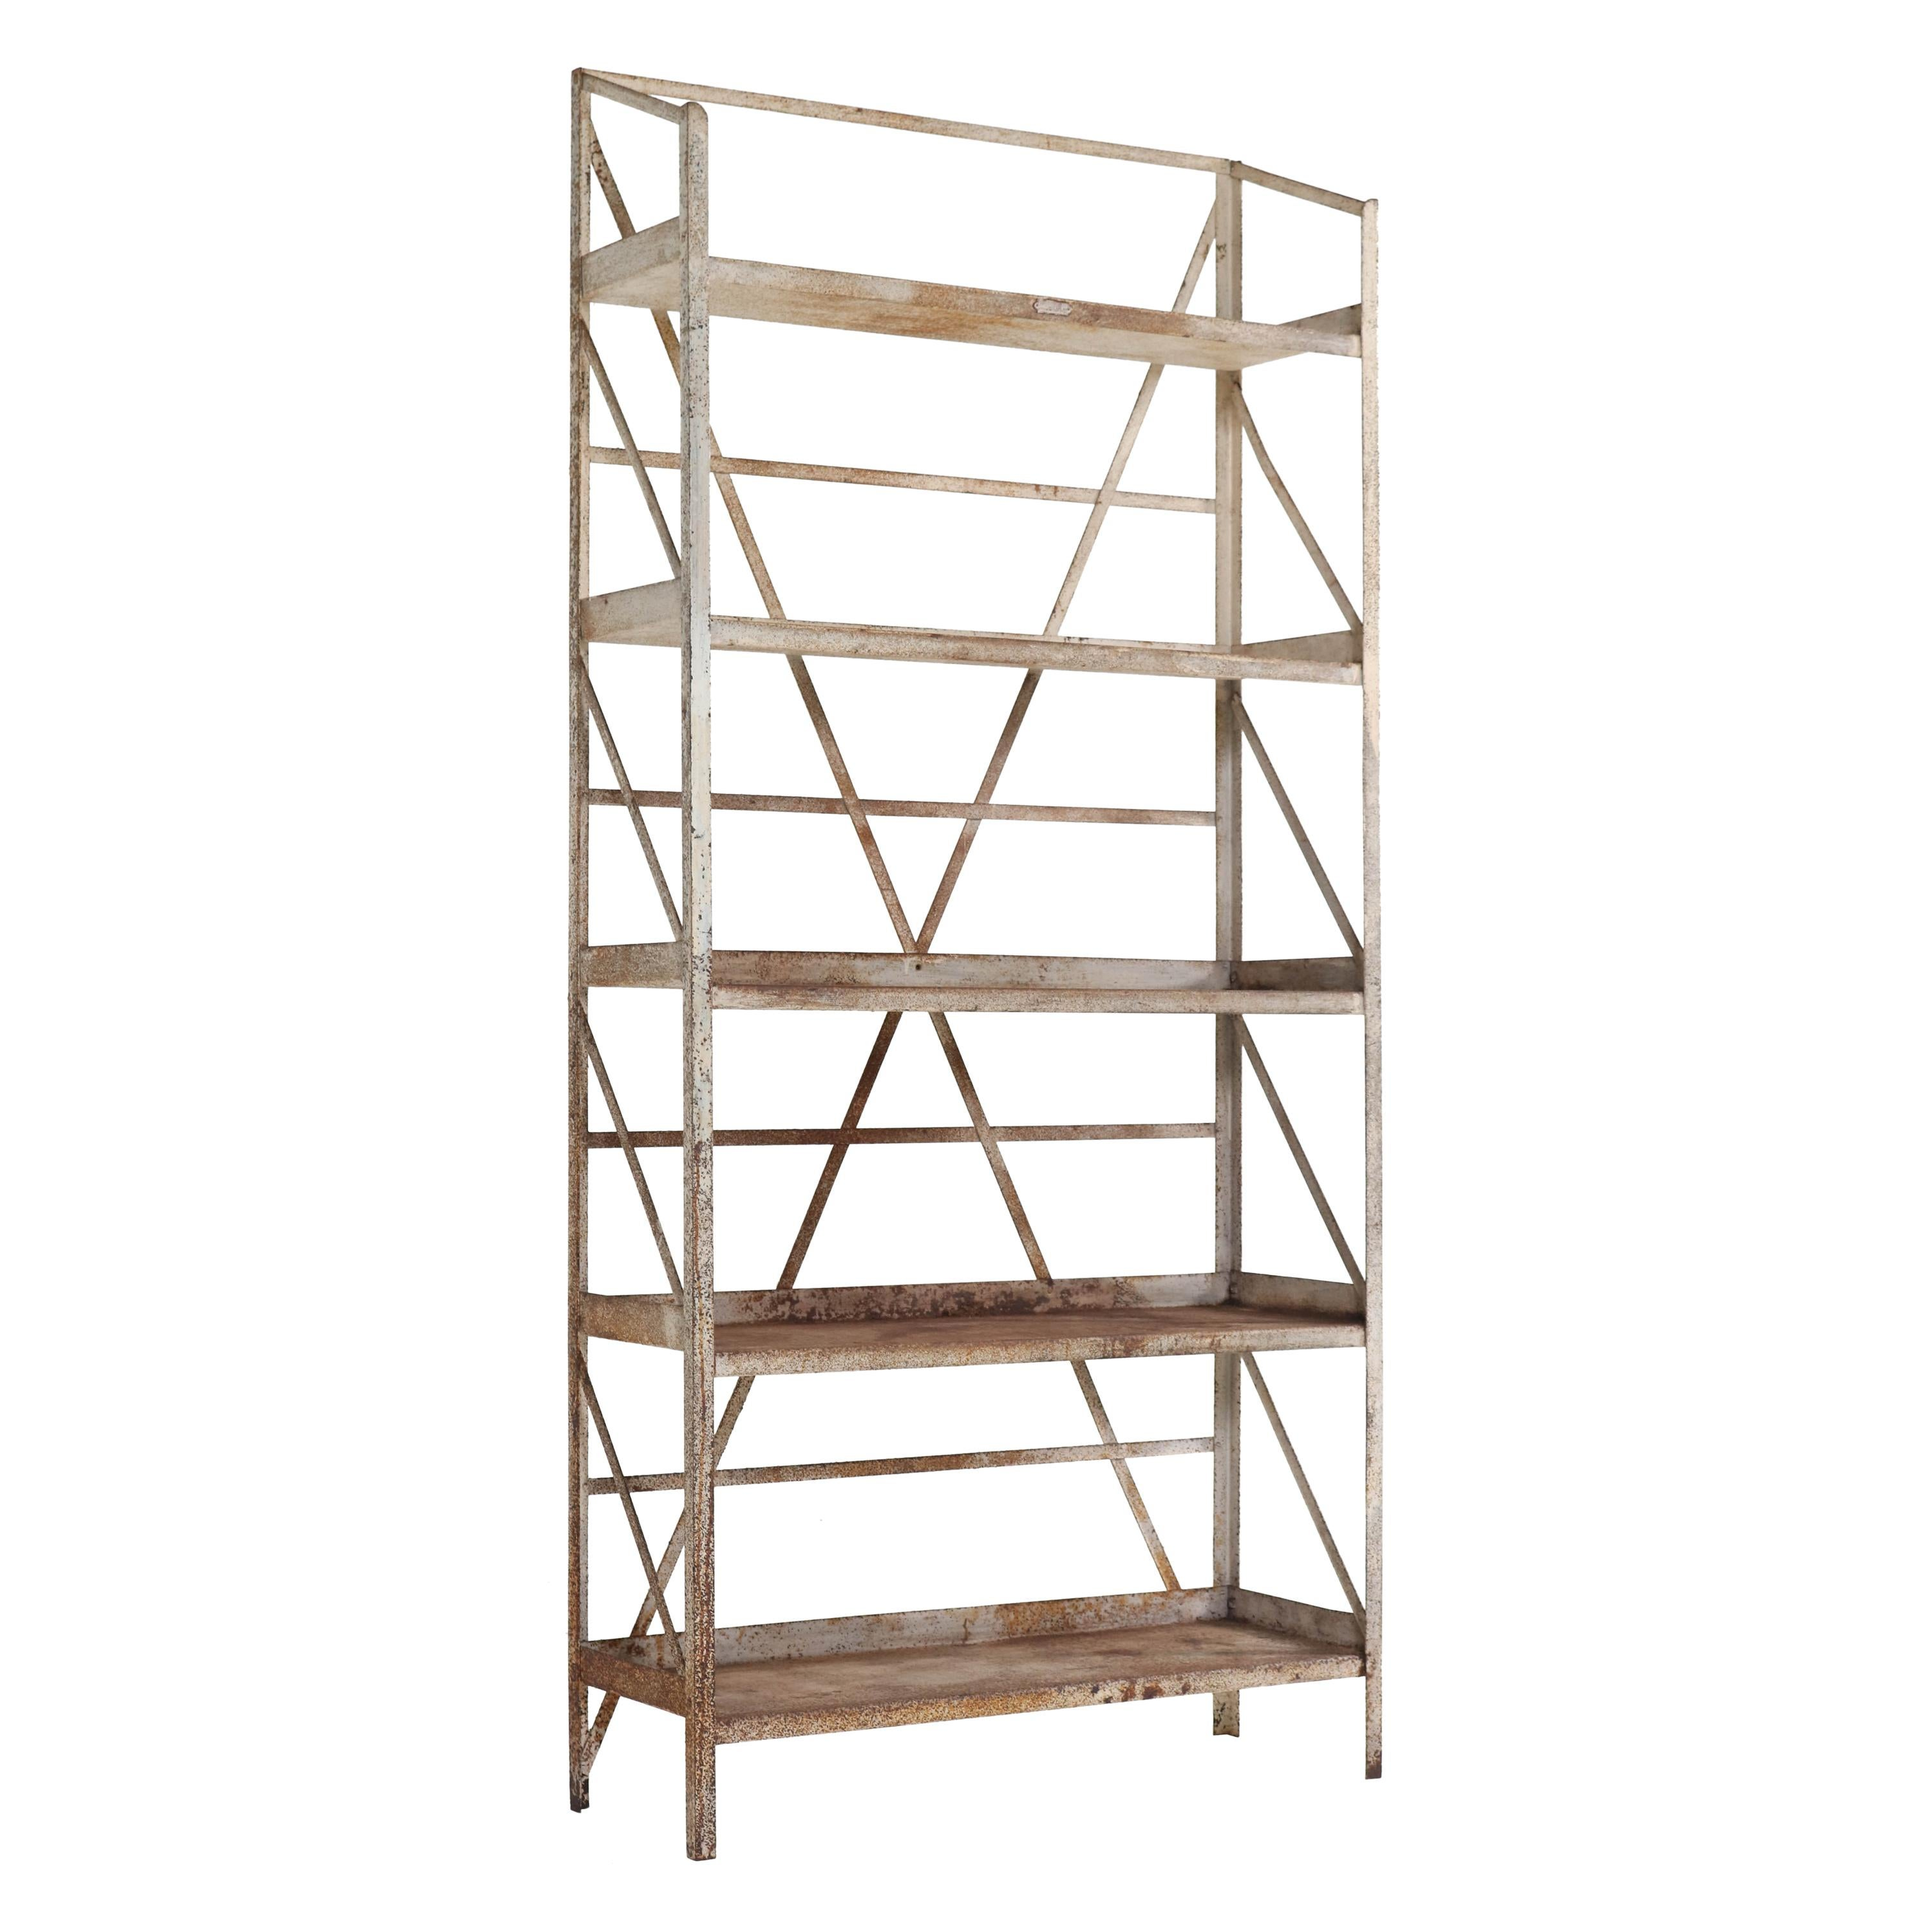 Small Art Deco Red Shelving Unit Sweden 1930s At 1stdibs